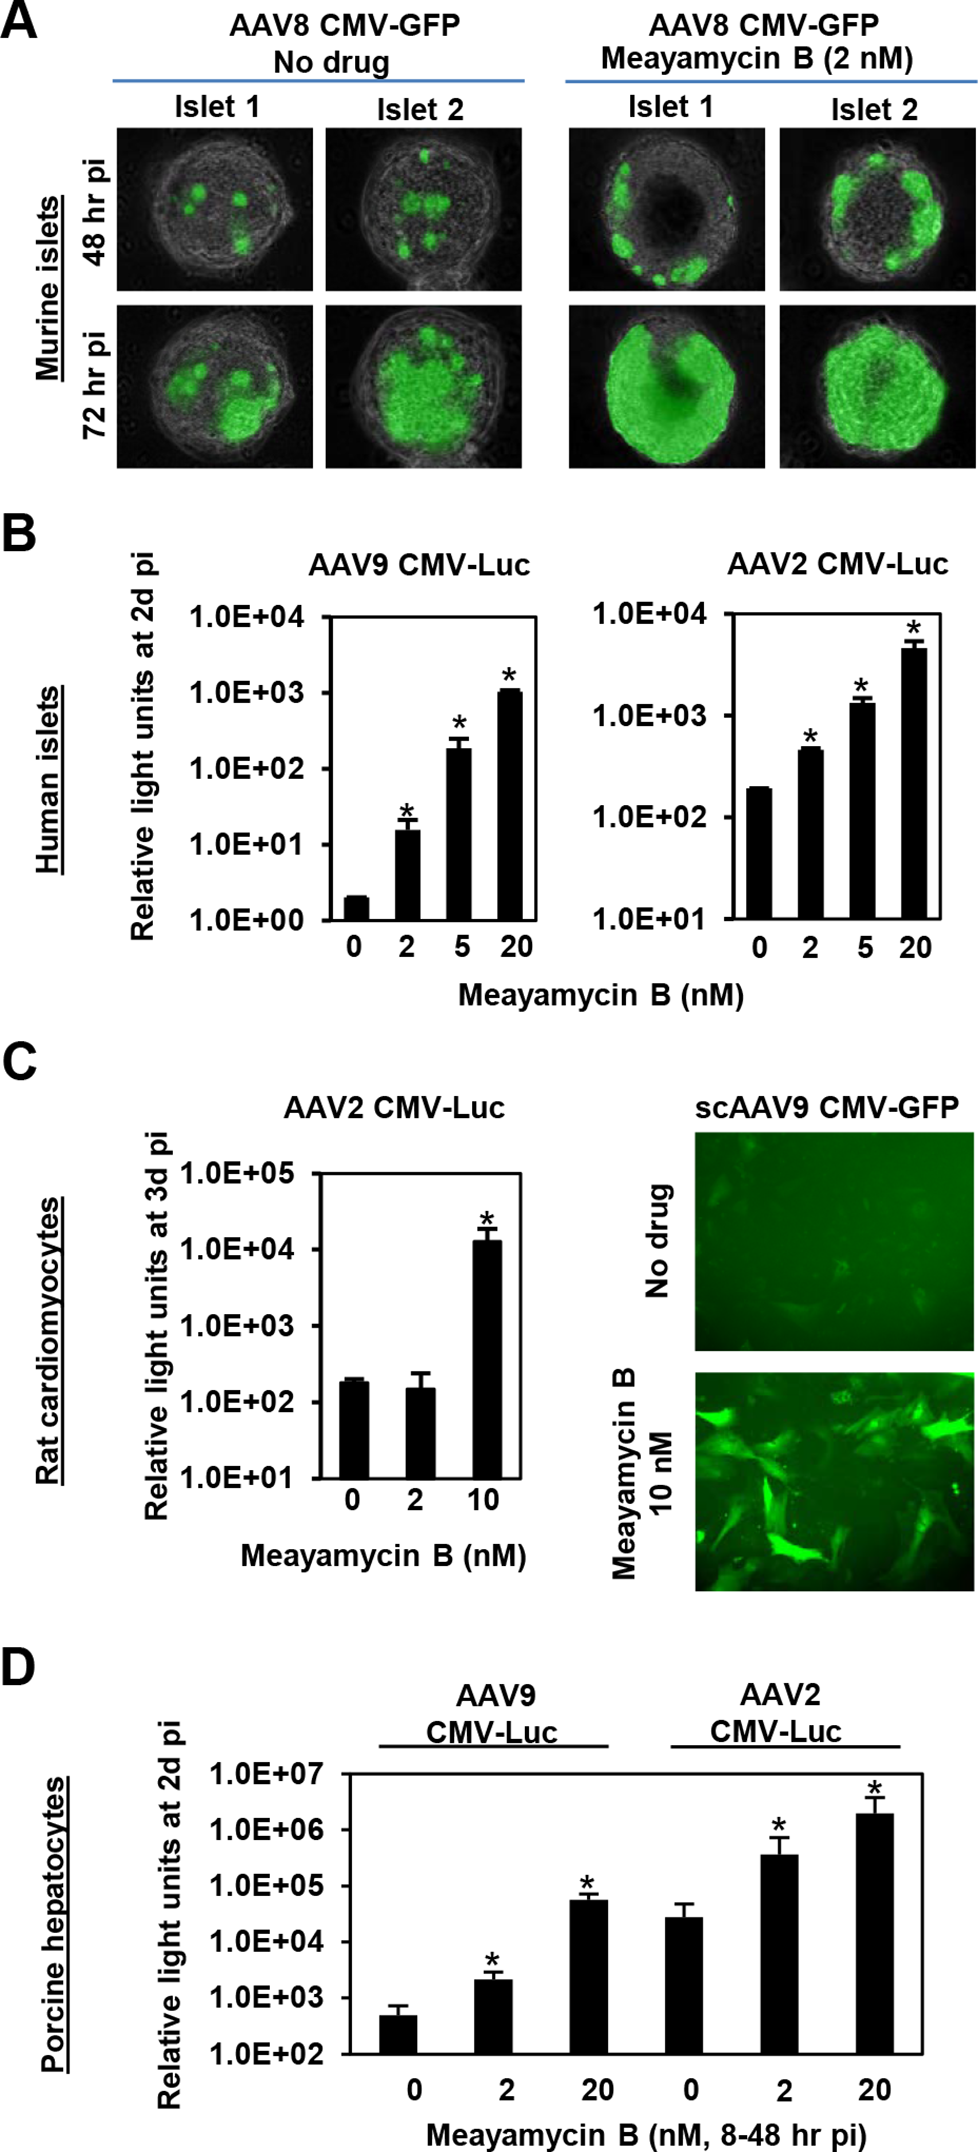 Meayamycin B increases AAV vector transduction of clinically relevant cell types.